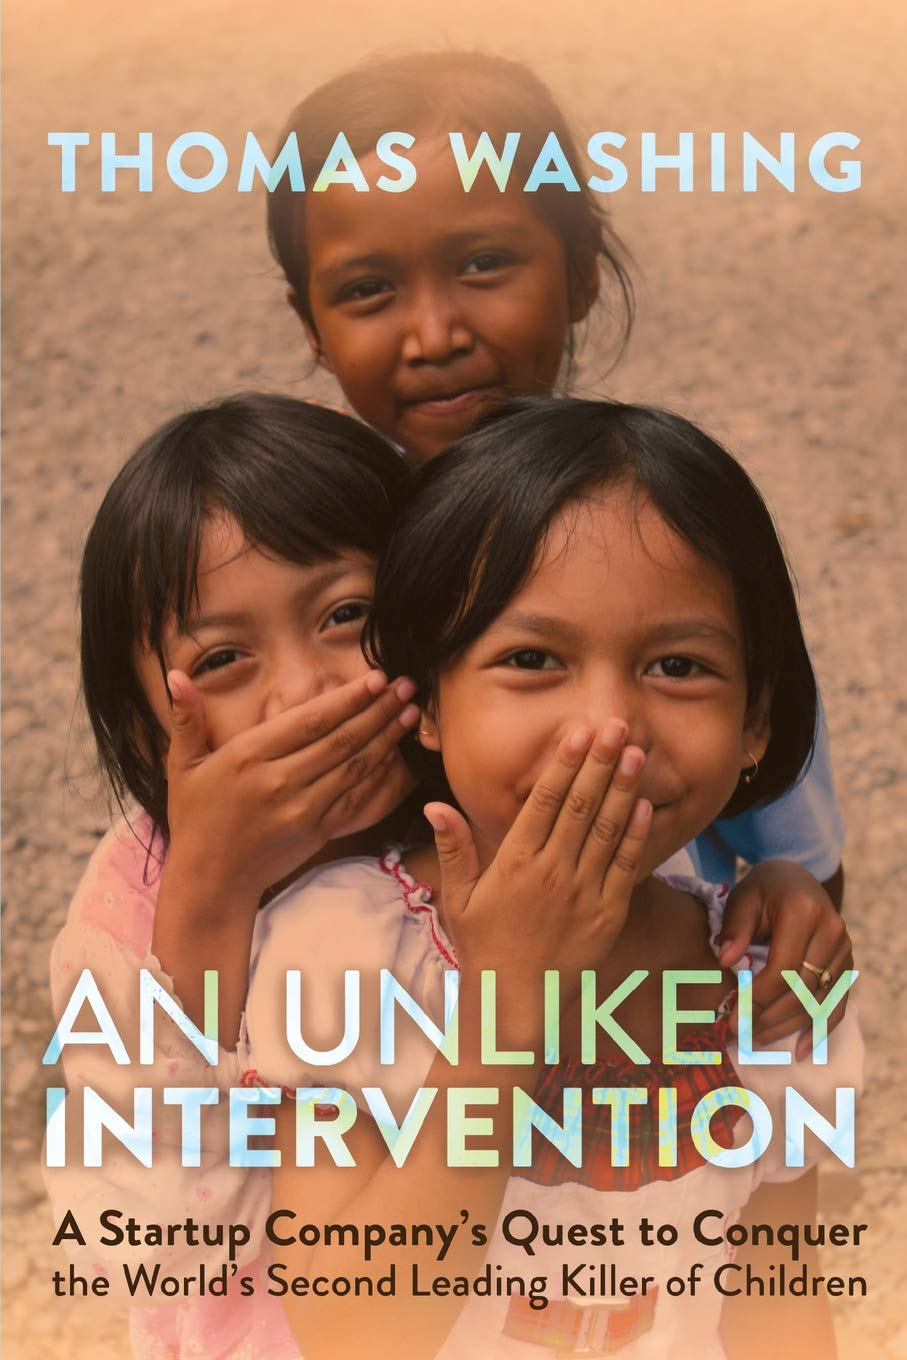 An Unlikely Intervention: A Startup Company's Quest to Conquer the World's Second Leading Killer of Children PDF ePub book